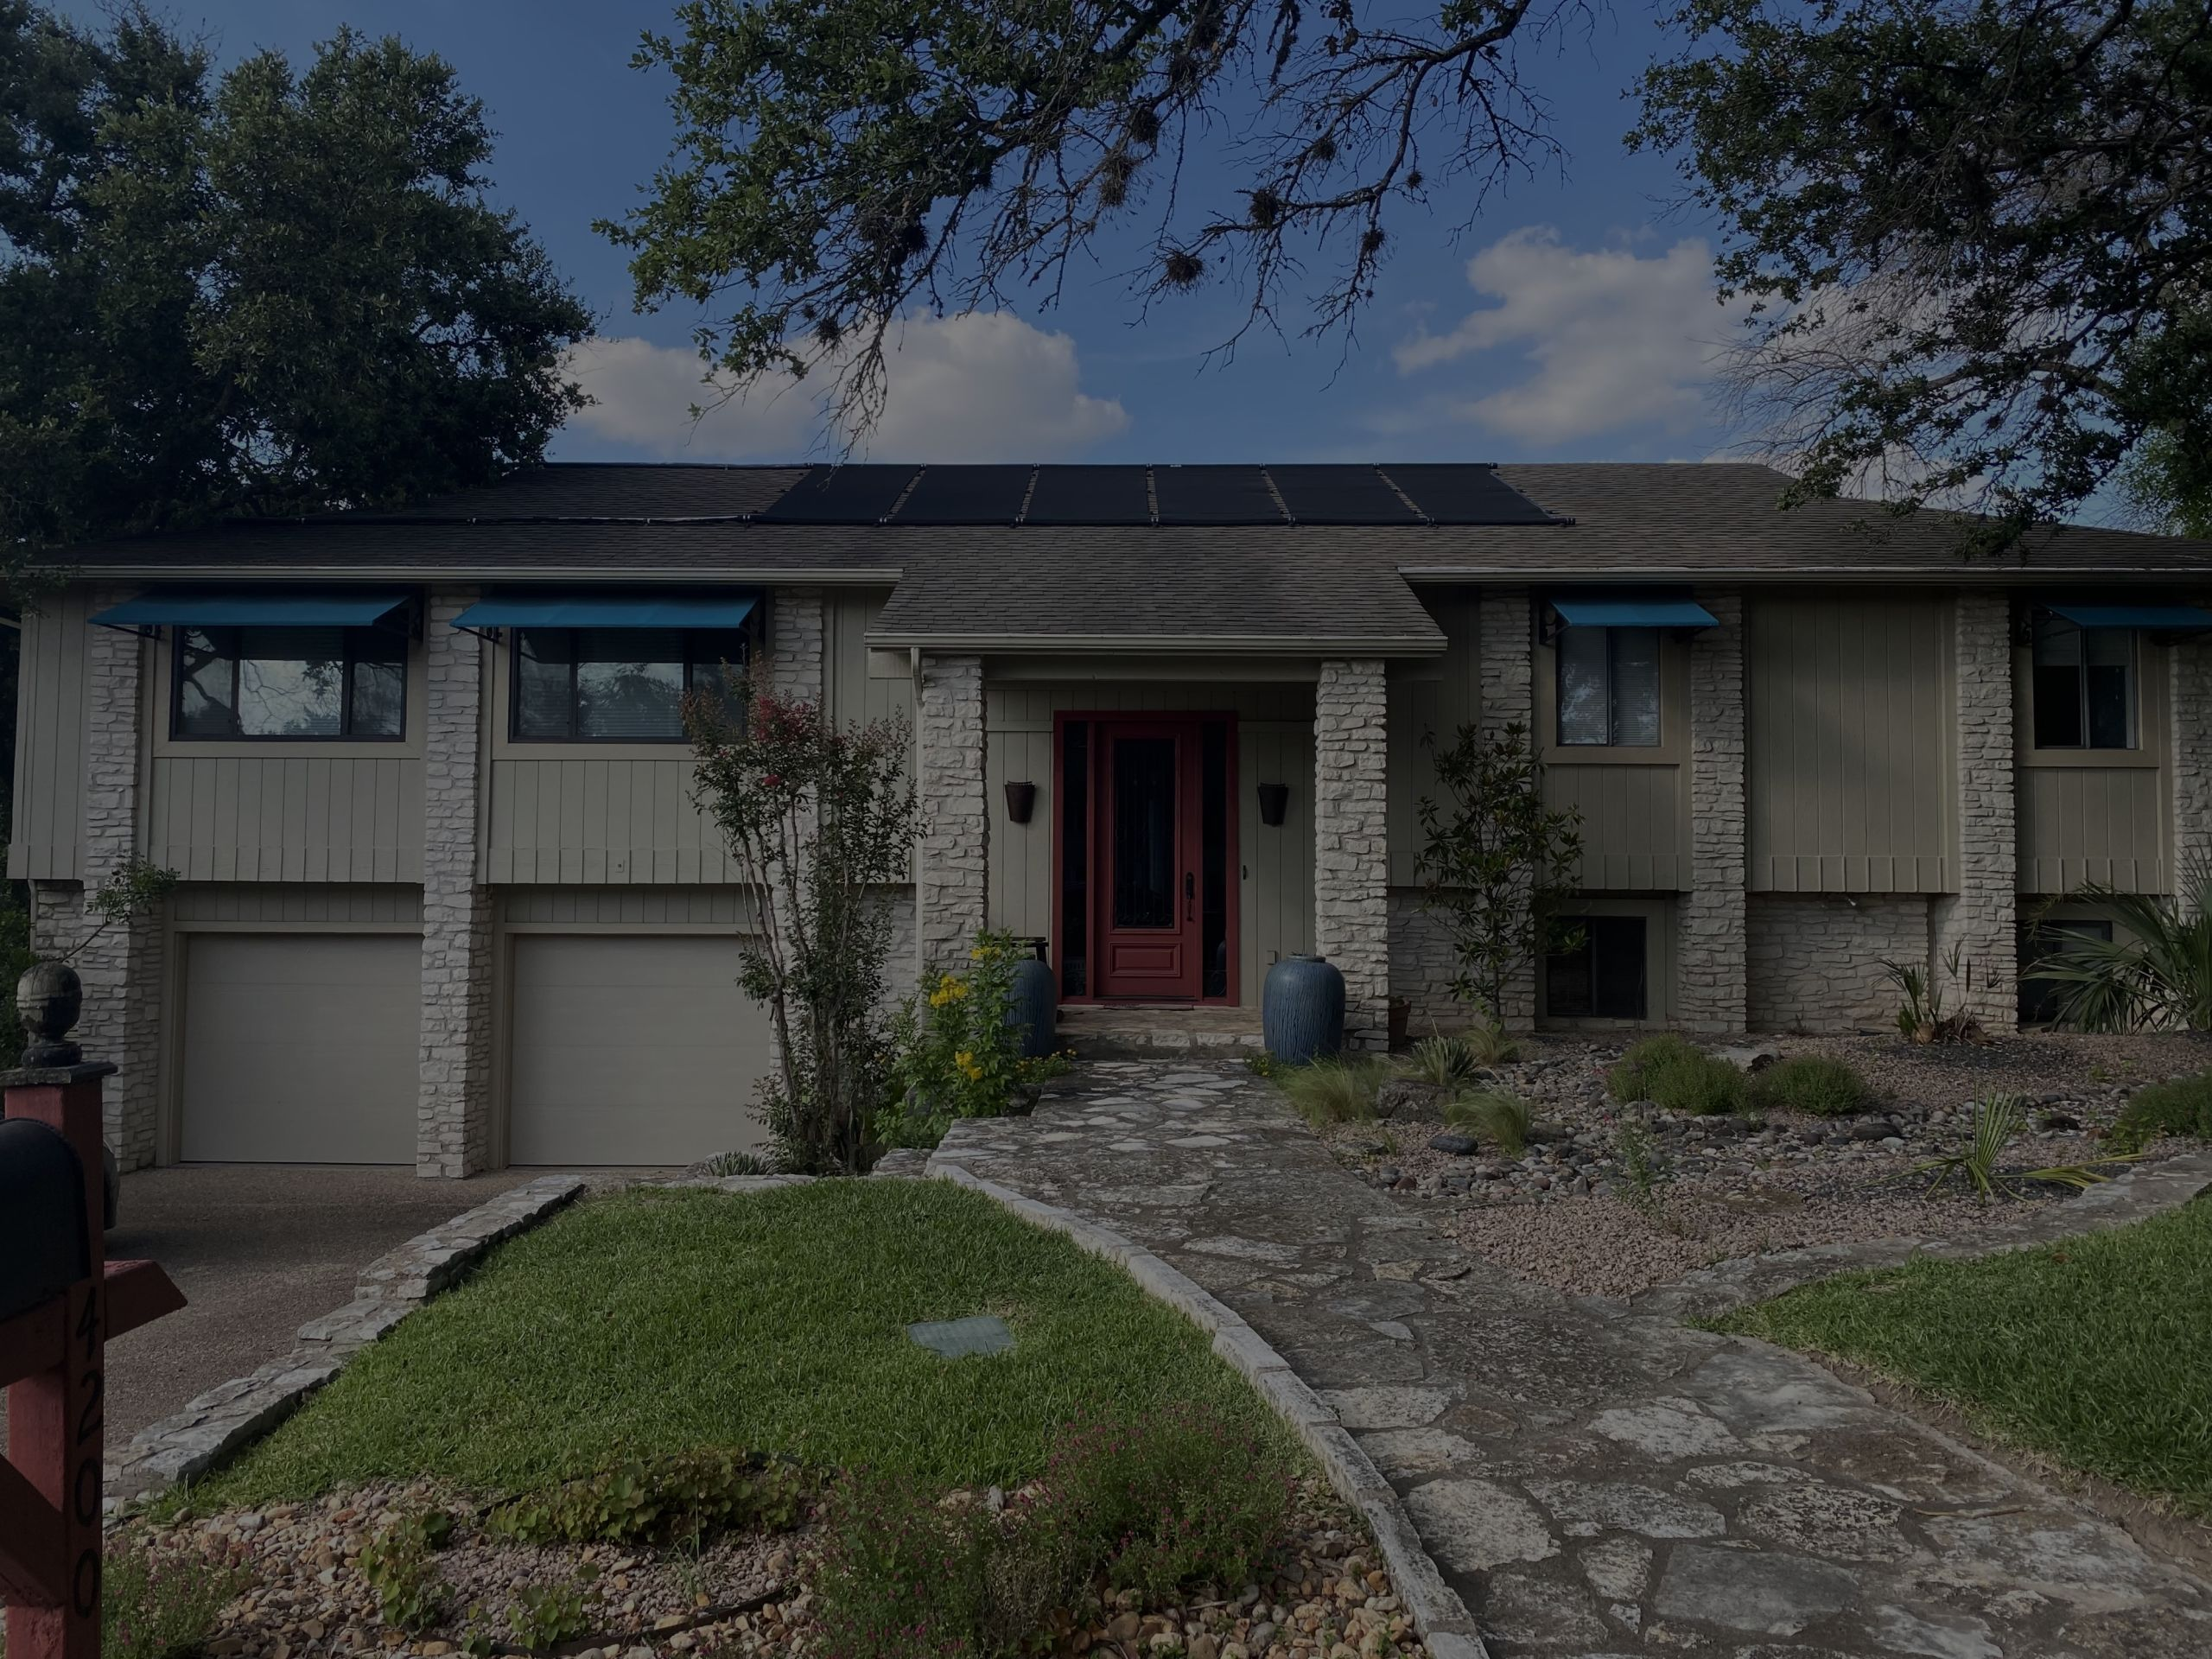 4200 Bluffridge: Hill Country estate in the city. This private 1/3 acre yard and 3,262 sq foot home has it all.